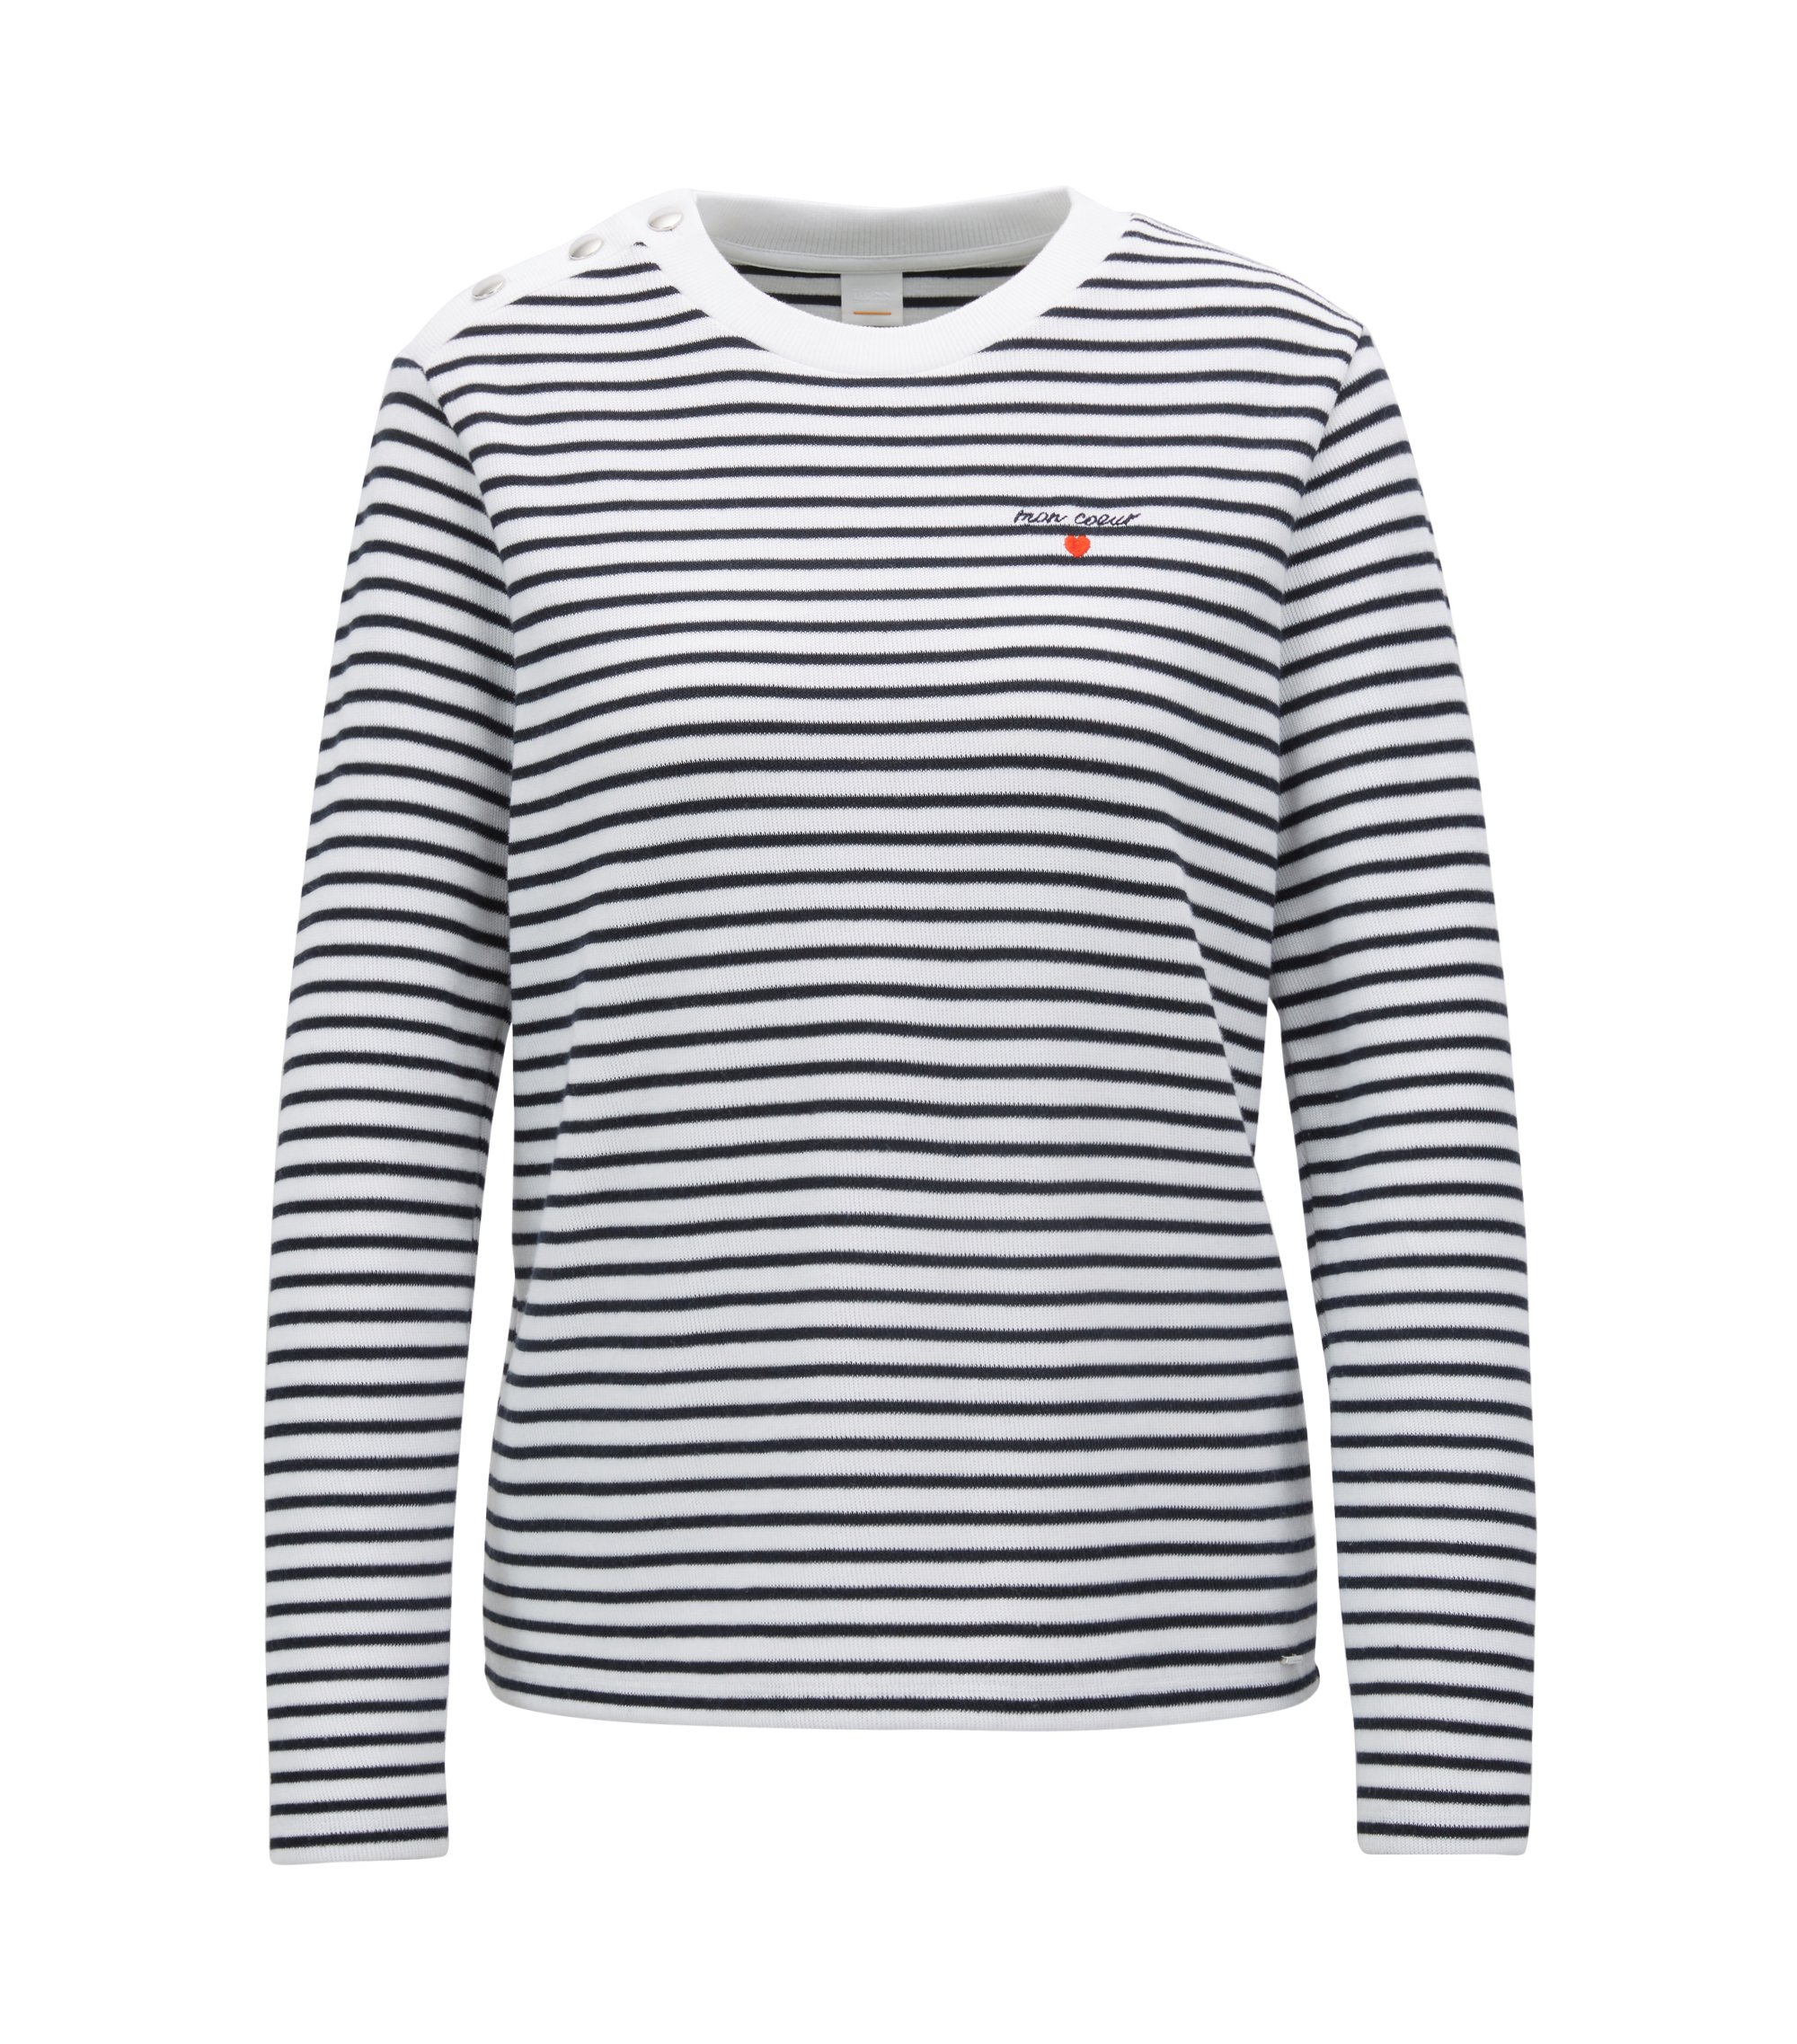 Long-sleeved striped T-shirt with slogan embroidery, Patterned